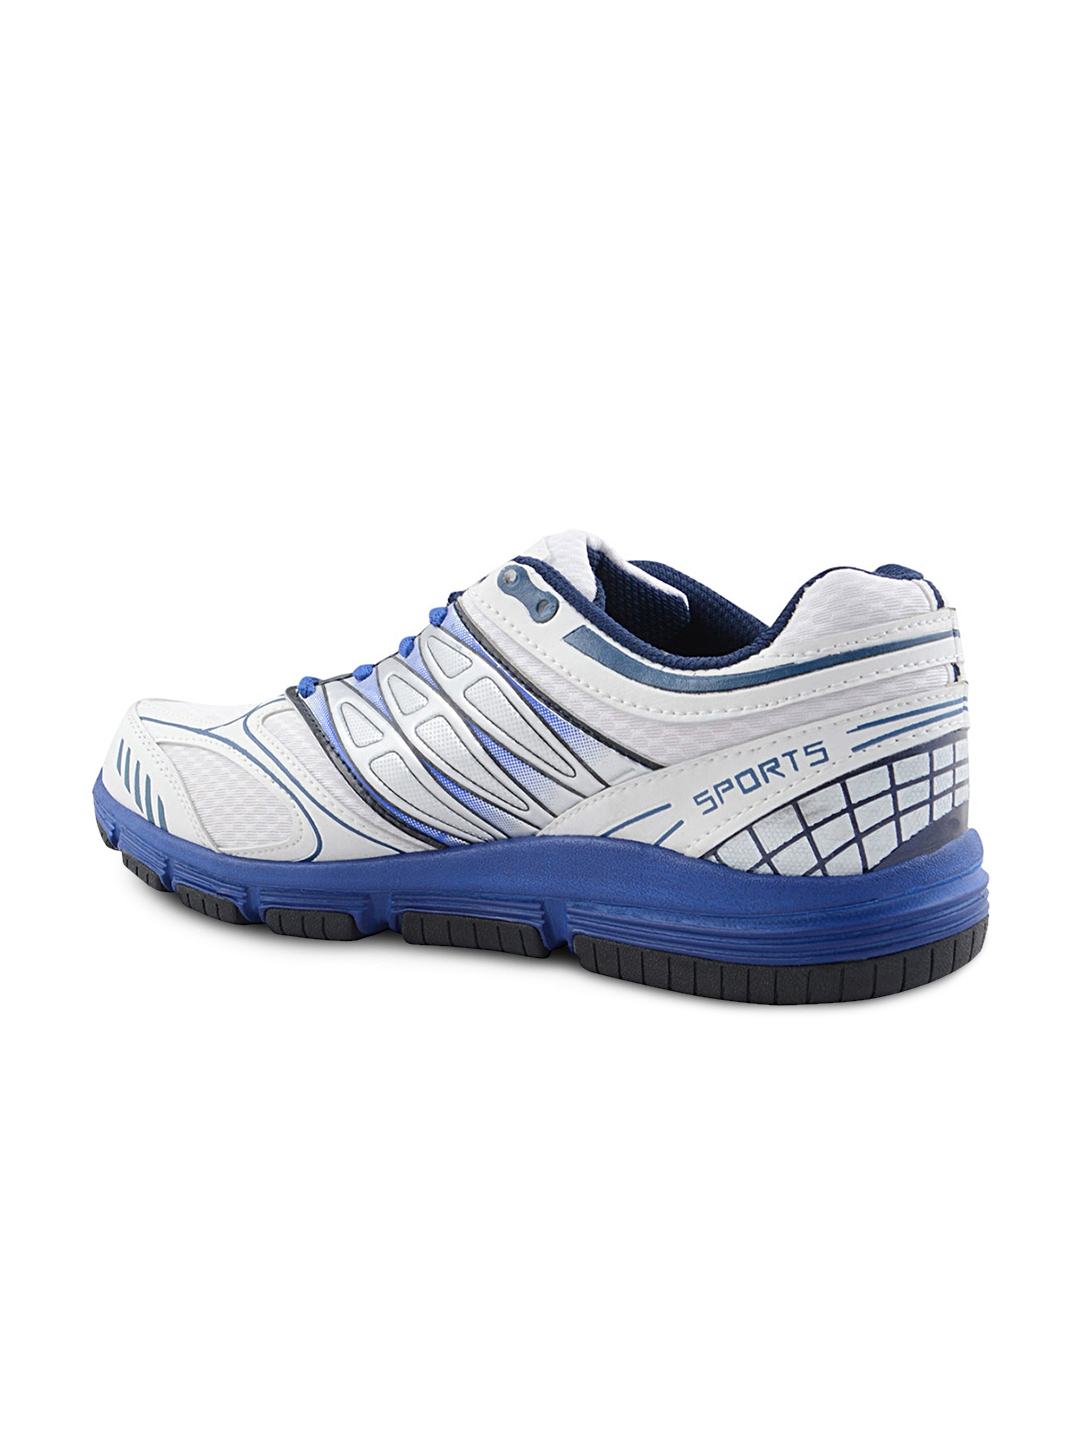 myntra yepme white blue walking shoes 374063 buy